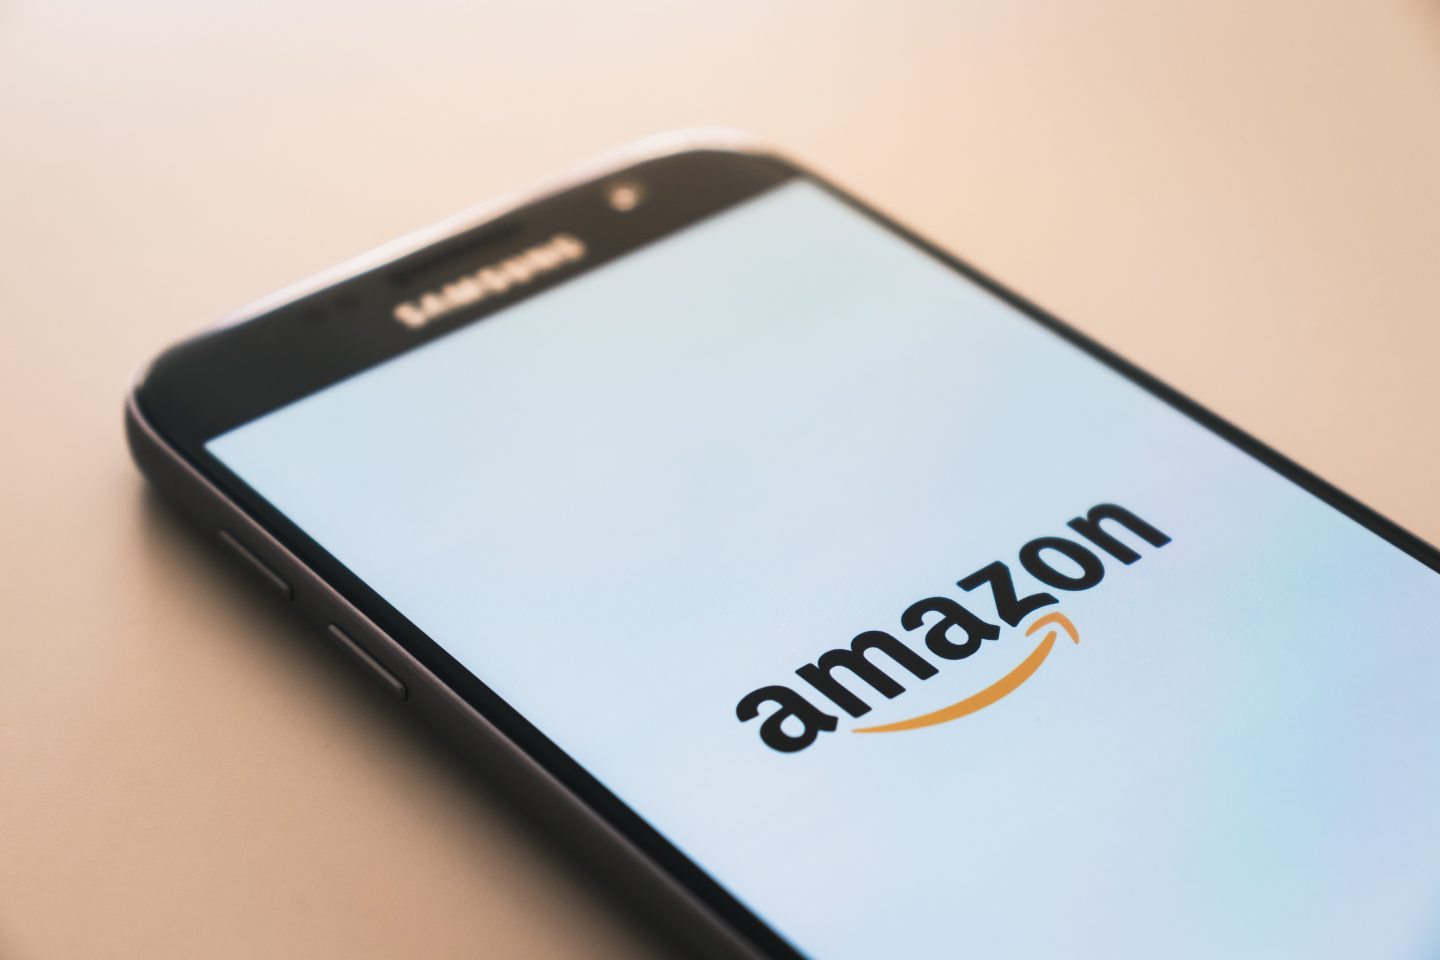 What Does Pending Verification Mean on Amazon?